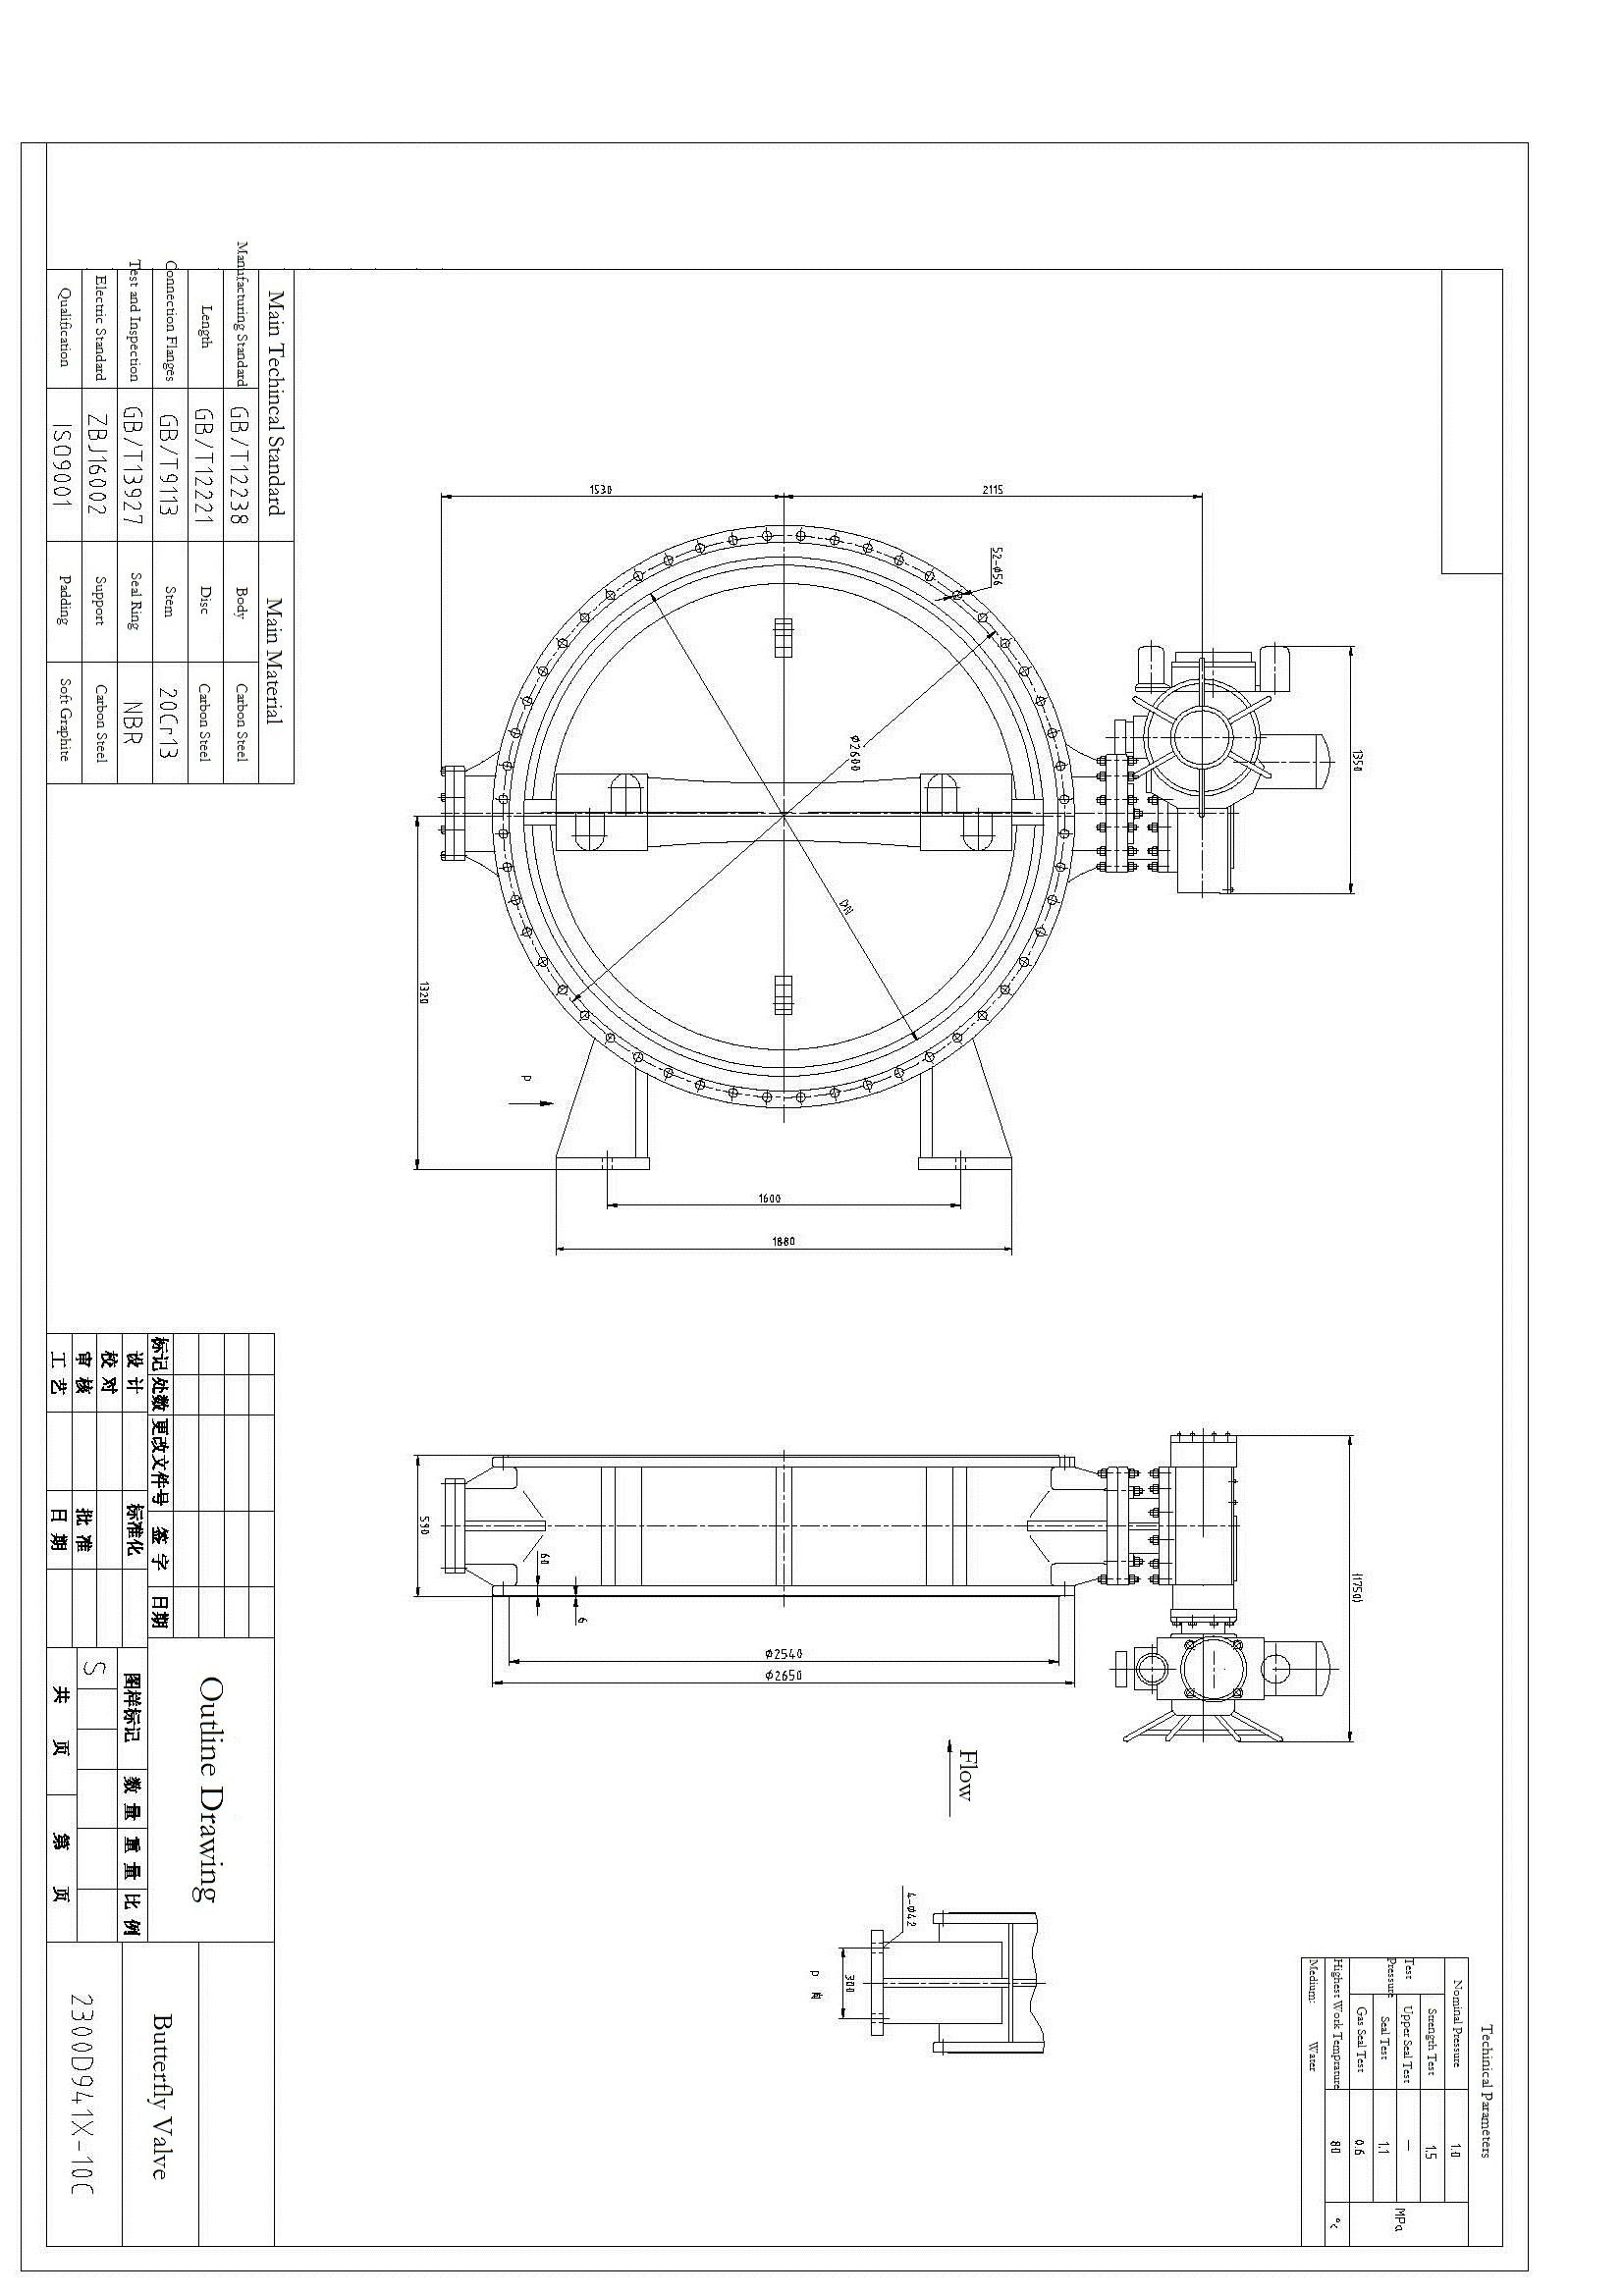 Pin By Susan Yao On Butterfly Valve